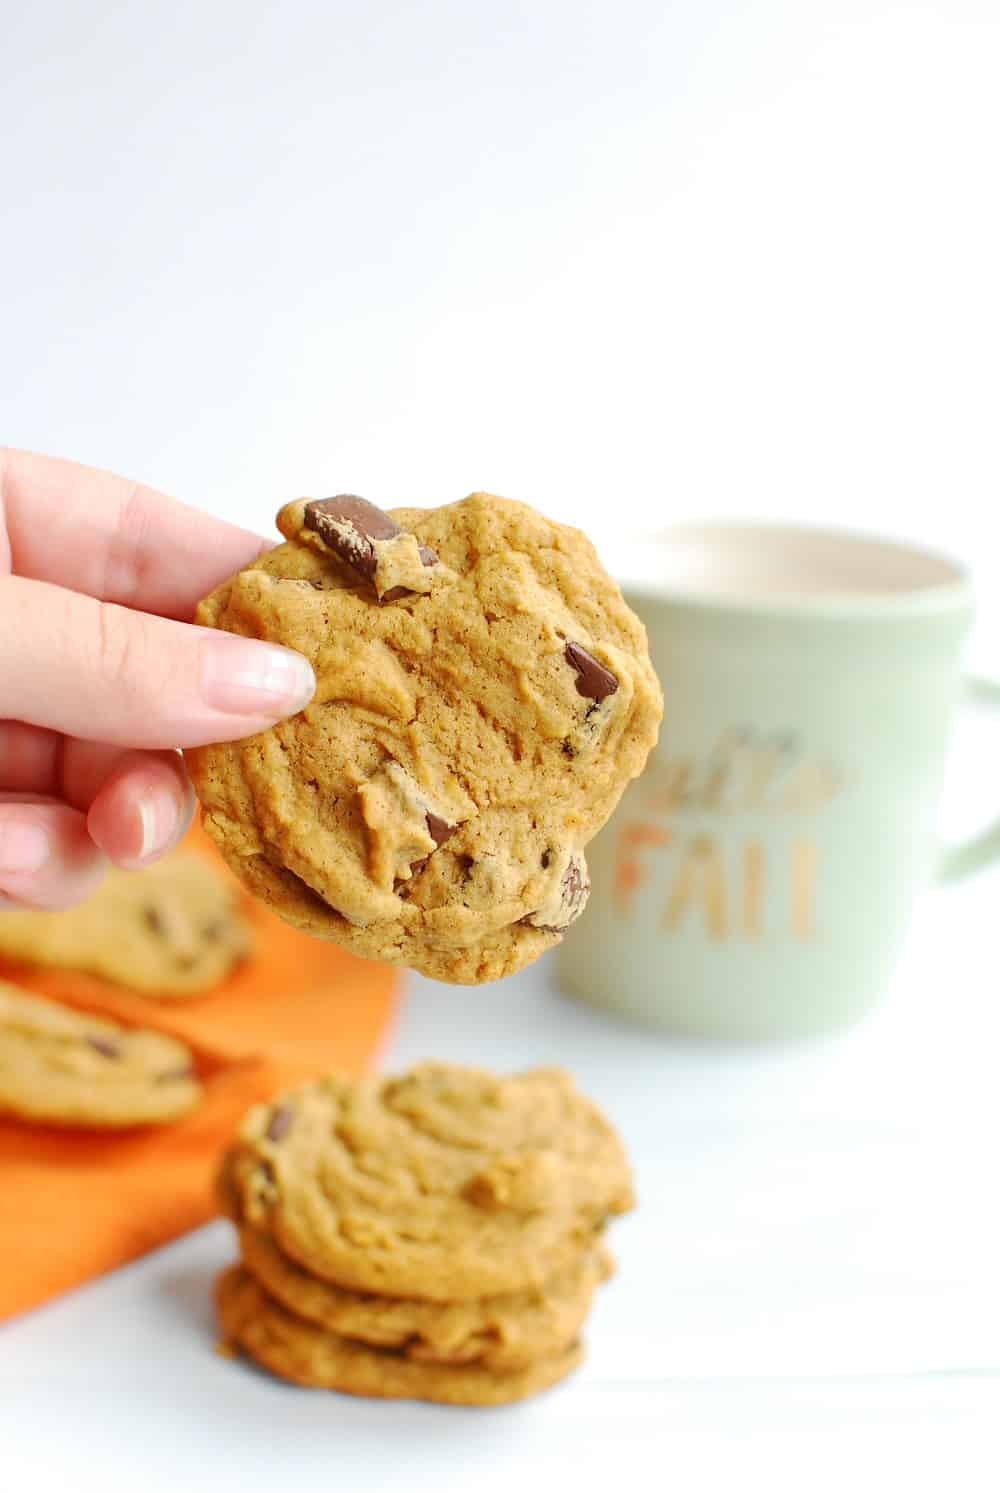 A woman's hand holding a delicious vegan pumpkin chocolate chip cookie